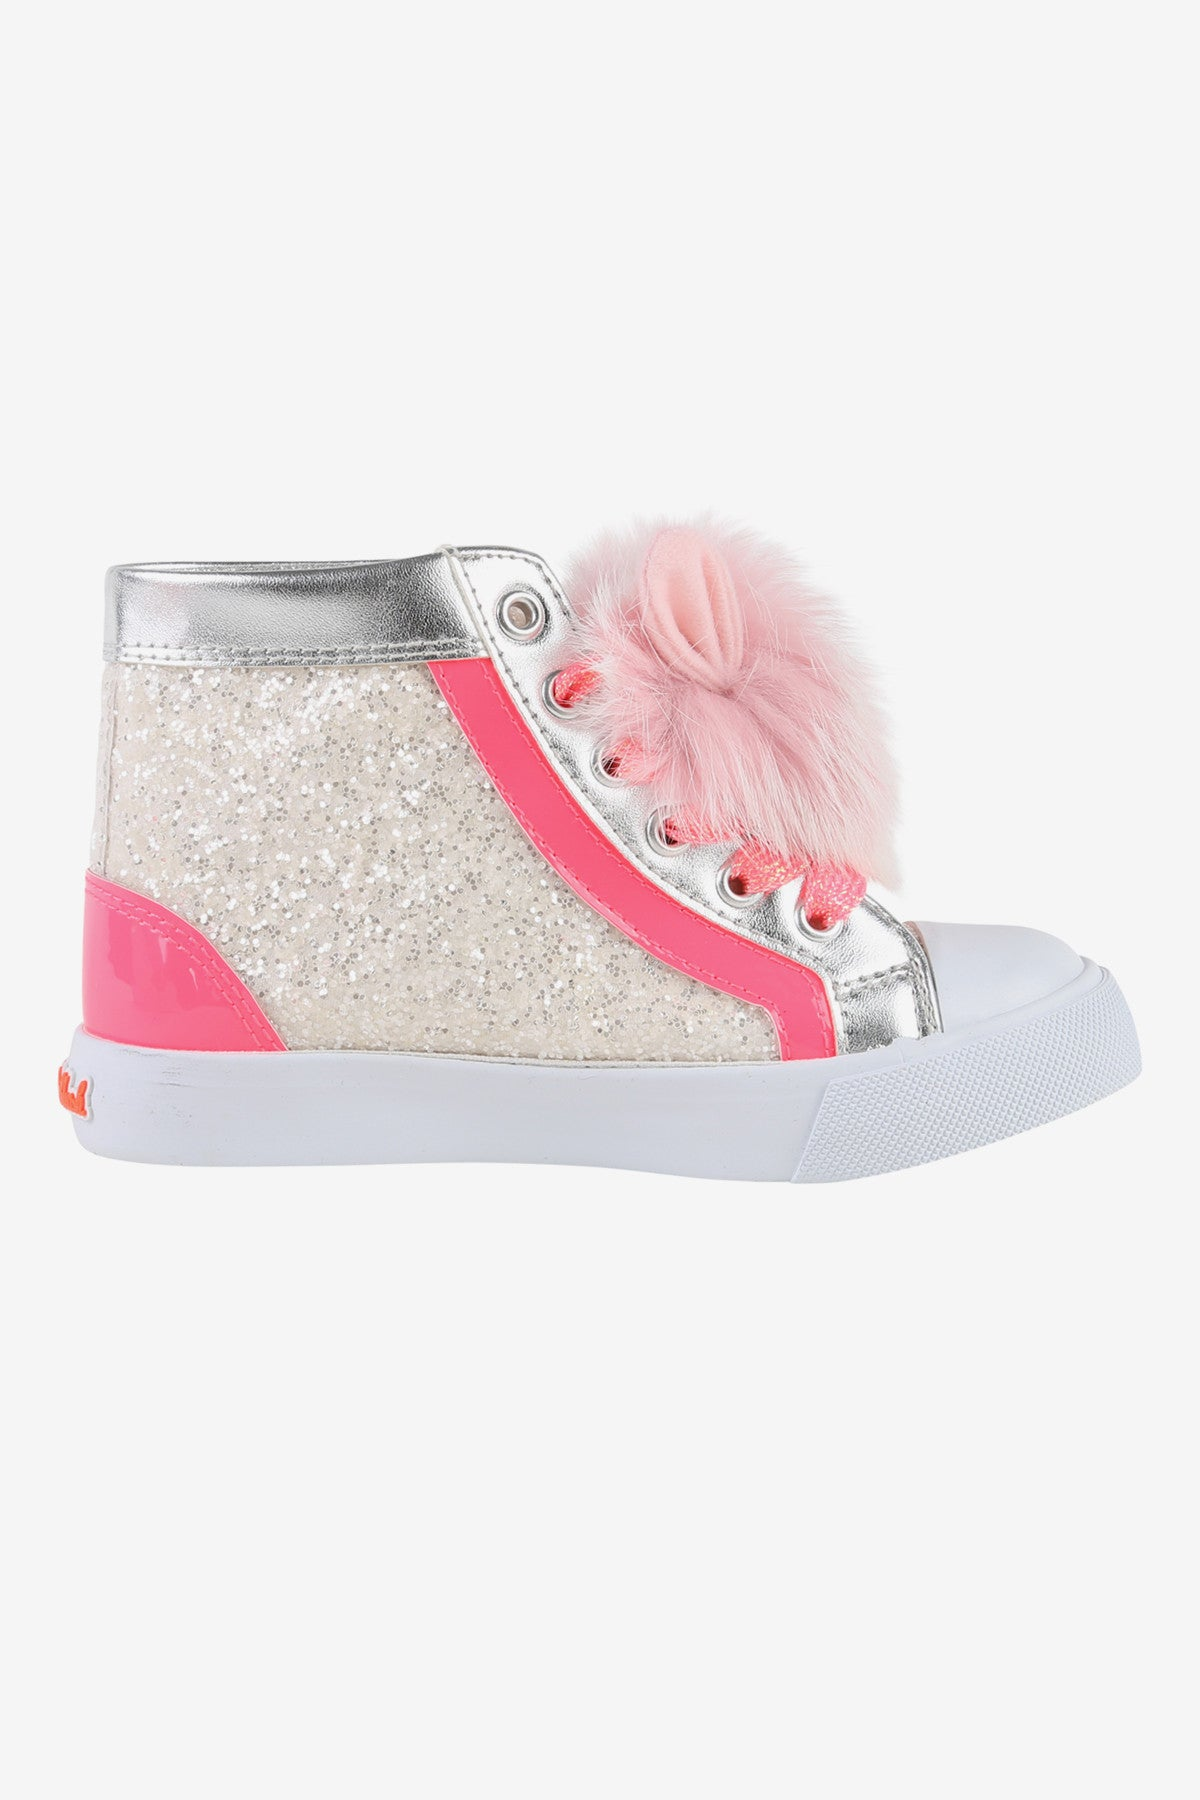 Billieblush Pom Pom High Top Girls Sneaker